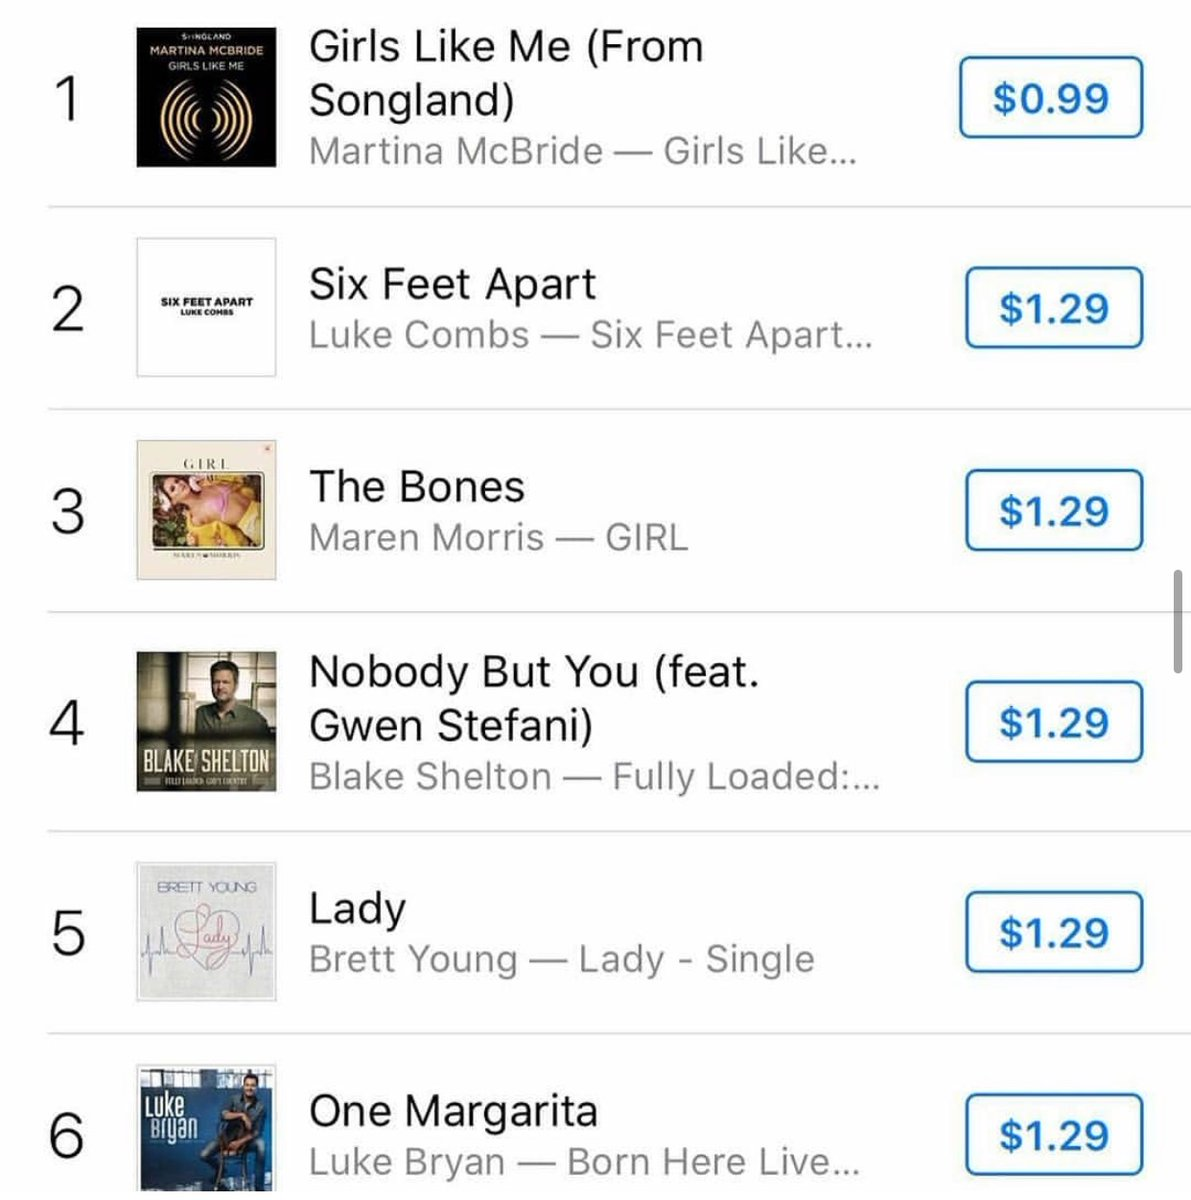 On release day, my song #GirlsLikeMe became #1 on @AppleMusic country charts & I wanted to say thanks to all of the fans who purchased it to make that happen! Yall are the greatest! Keep downloading it & tag me in your posts listening! I love to see them. apple.co/3giN8RU